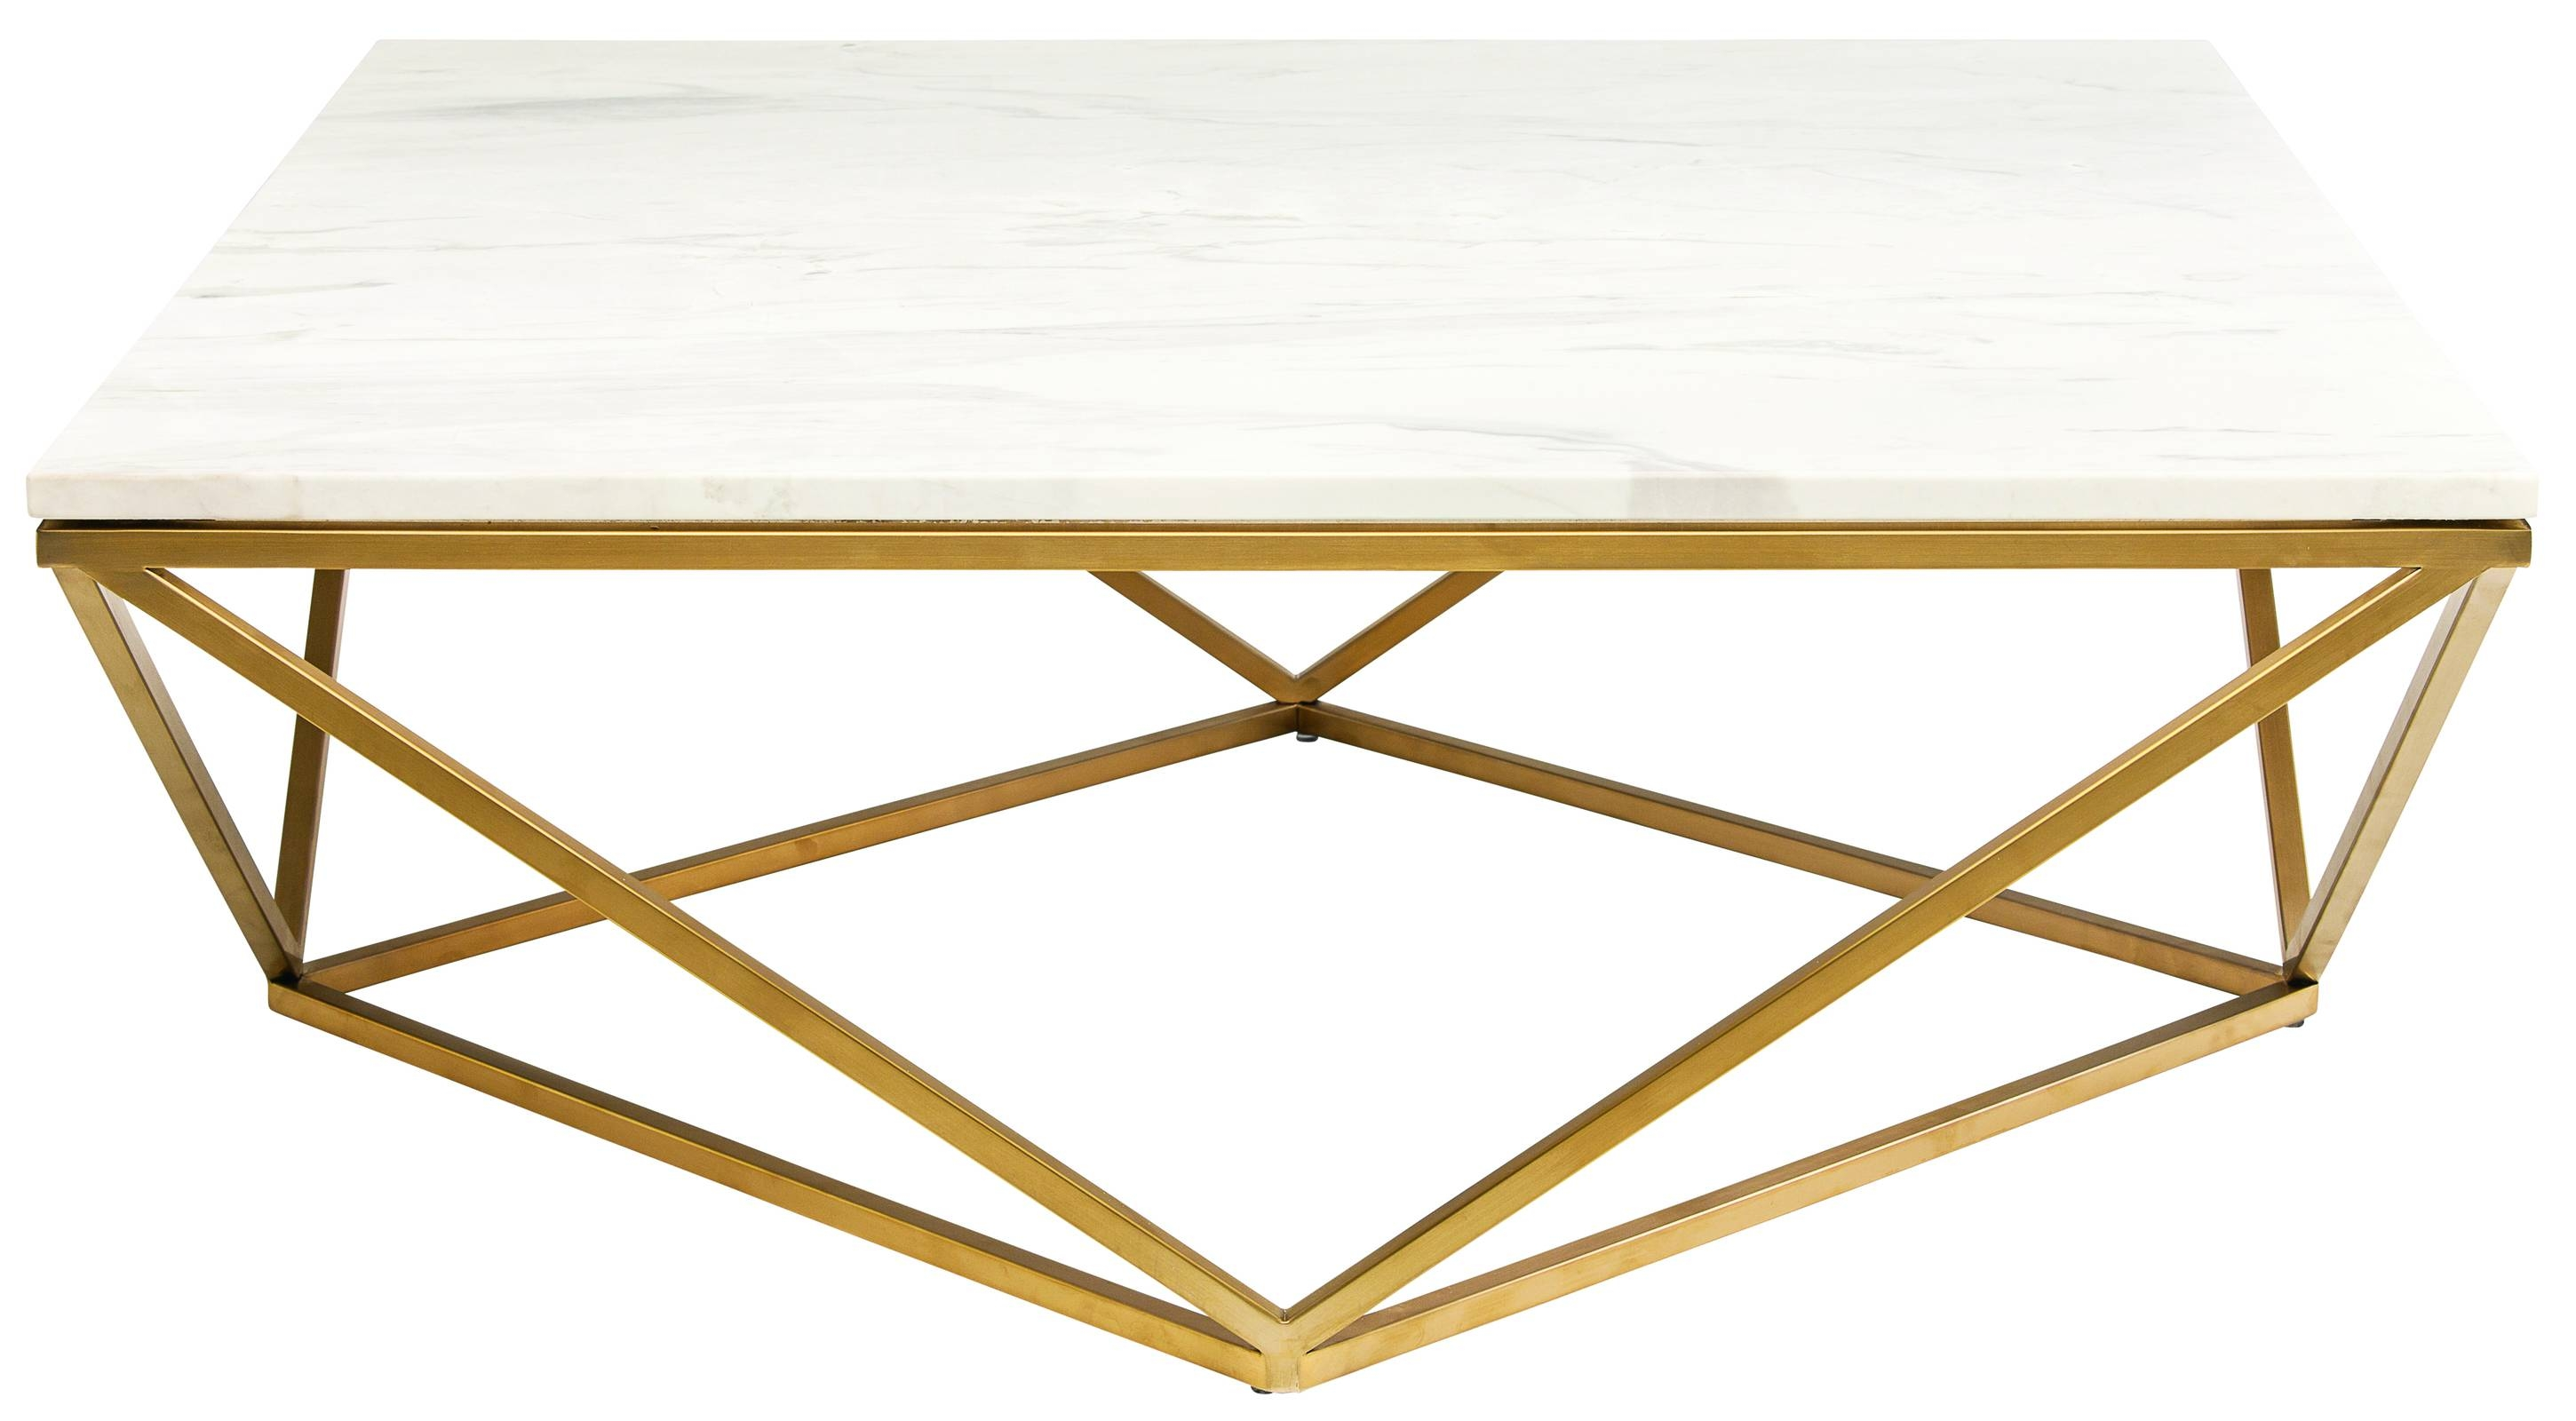 Jasmine Coffee Table In White Marble And Gold Basenuevo - Hgtb265 with regard to Marble Coffee Tables (Image 18 of 30)